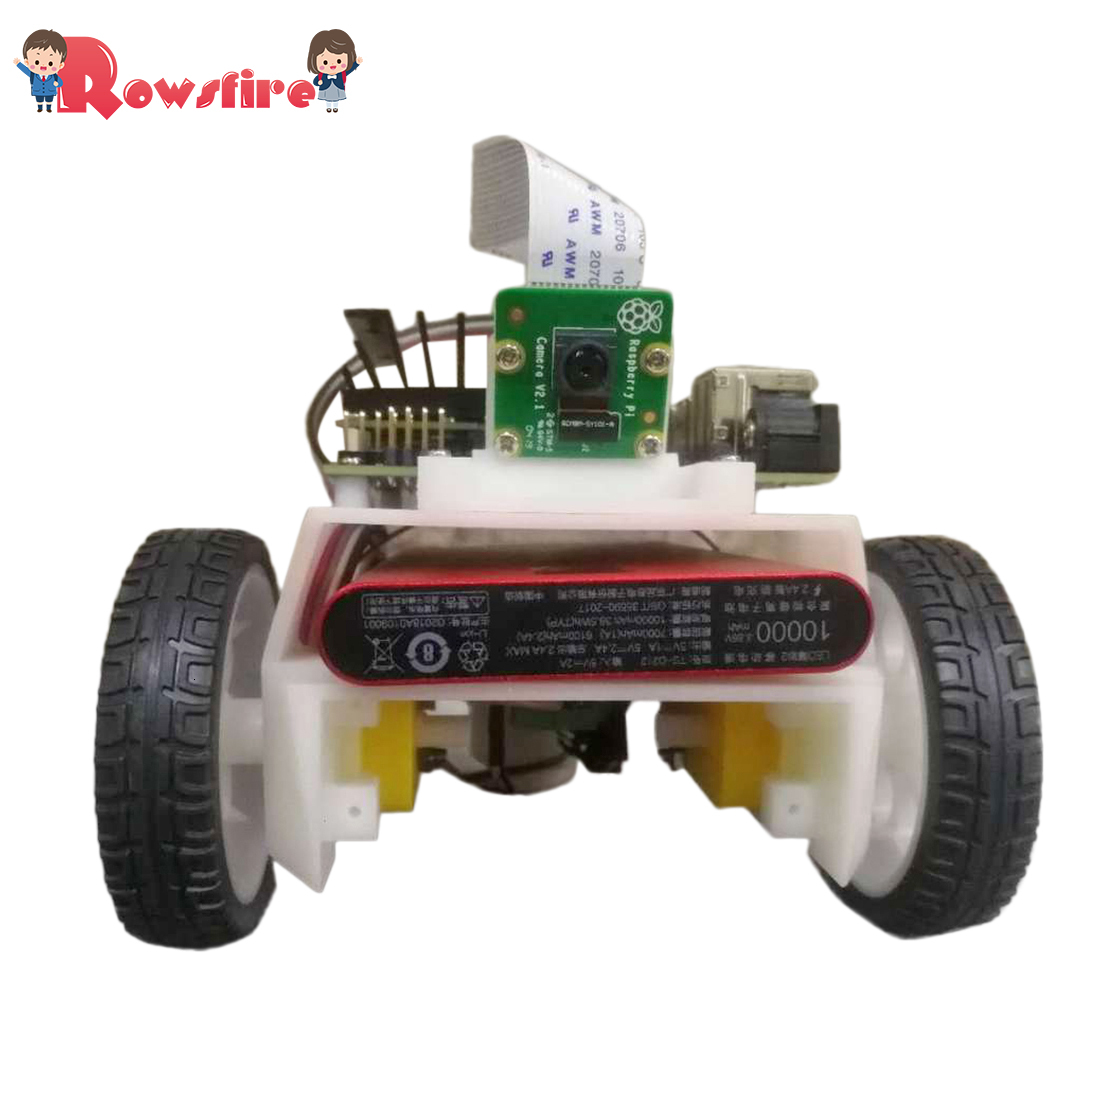 Super Quality Programmable Automatic Drive Robot Car Kit Educational Learning Kit